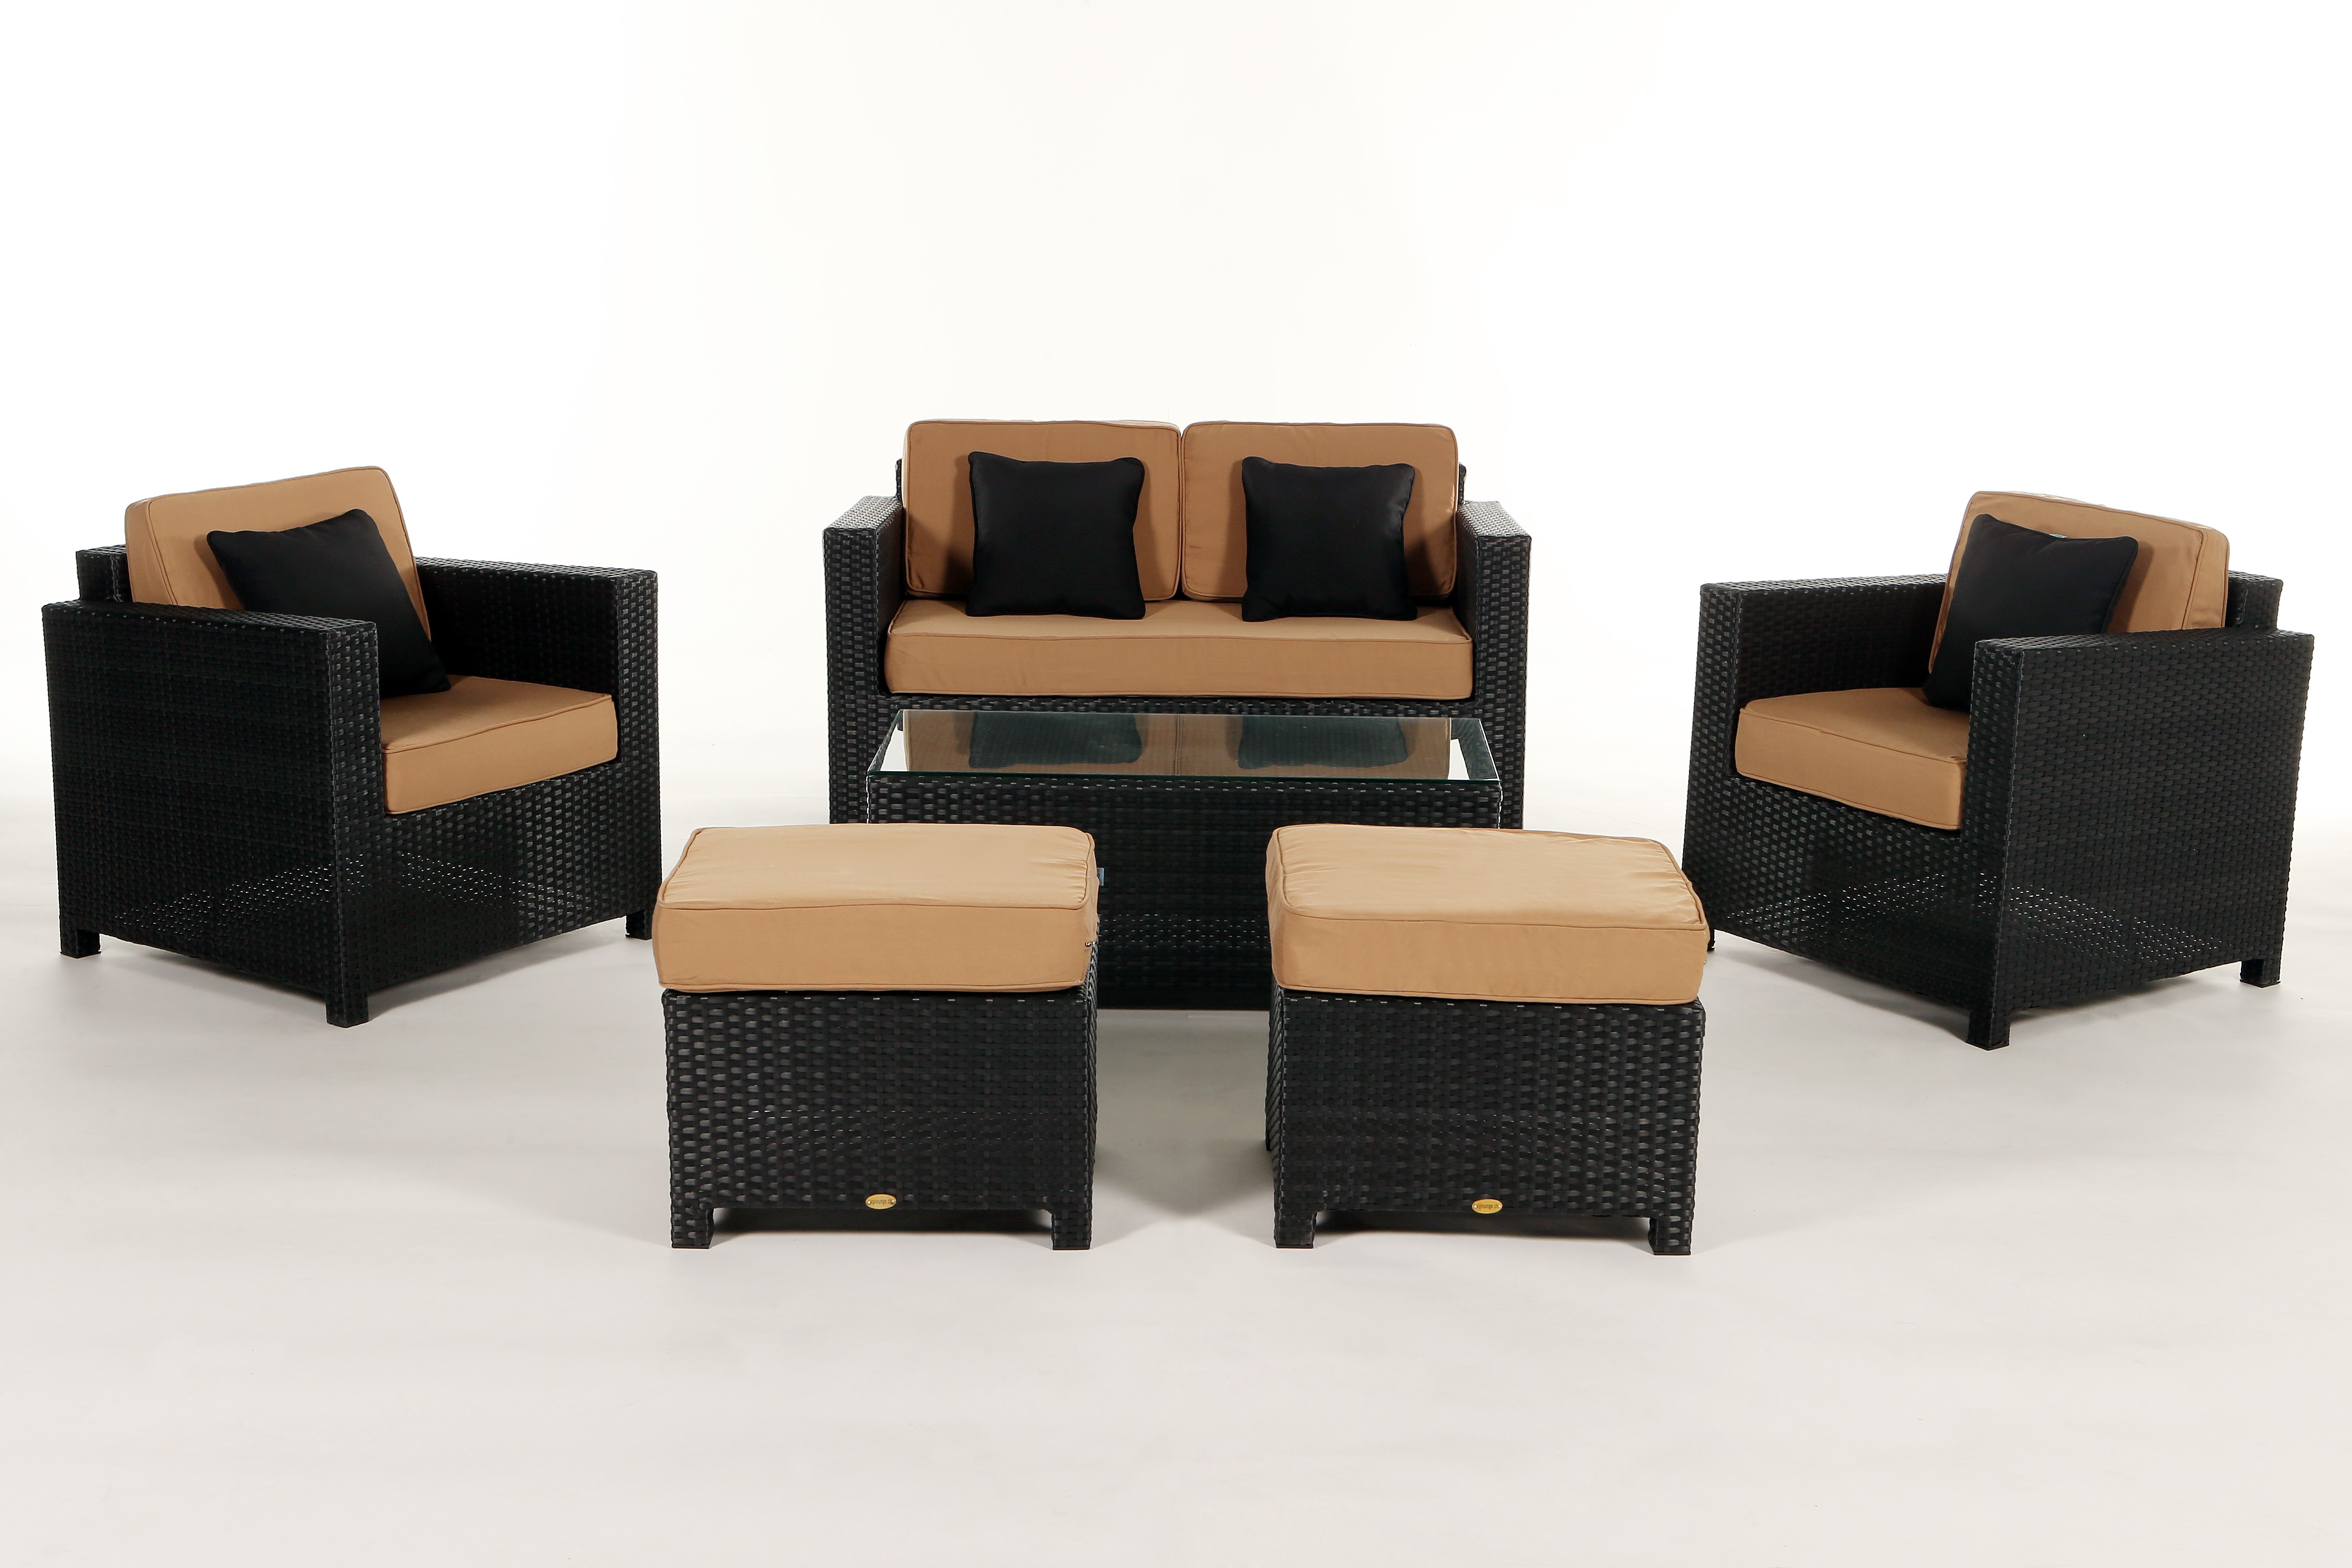 ... Luxury Deluxe Lounge, Caramel Cushion Cover Set ...